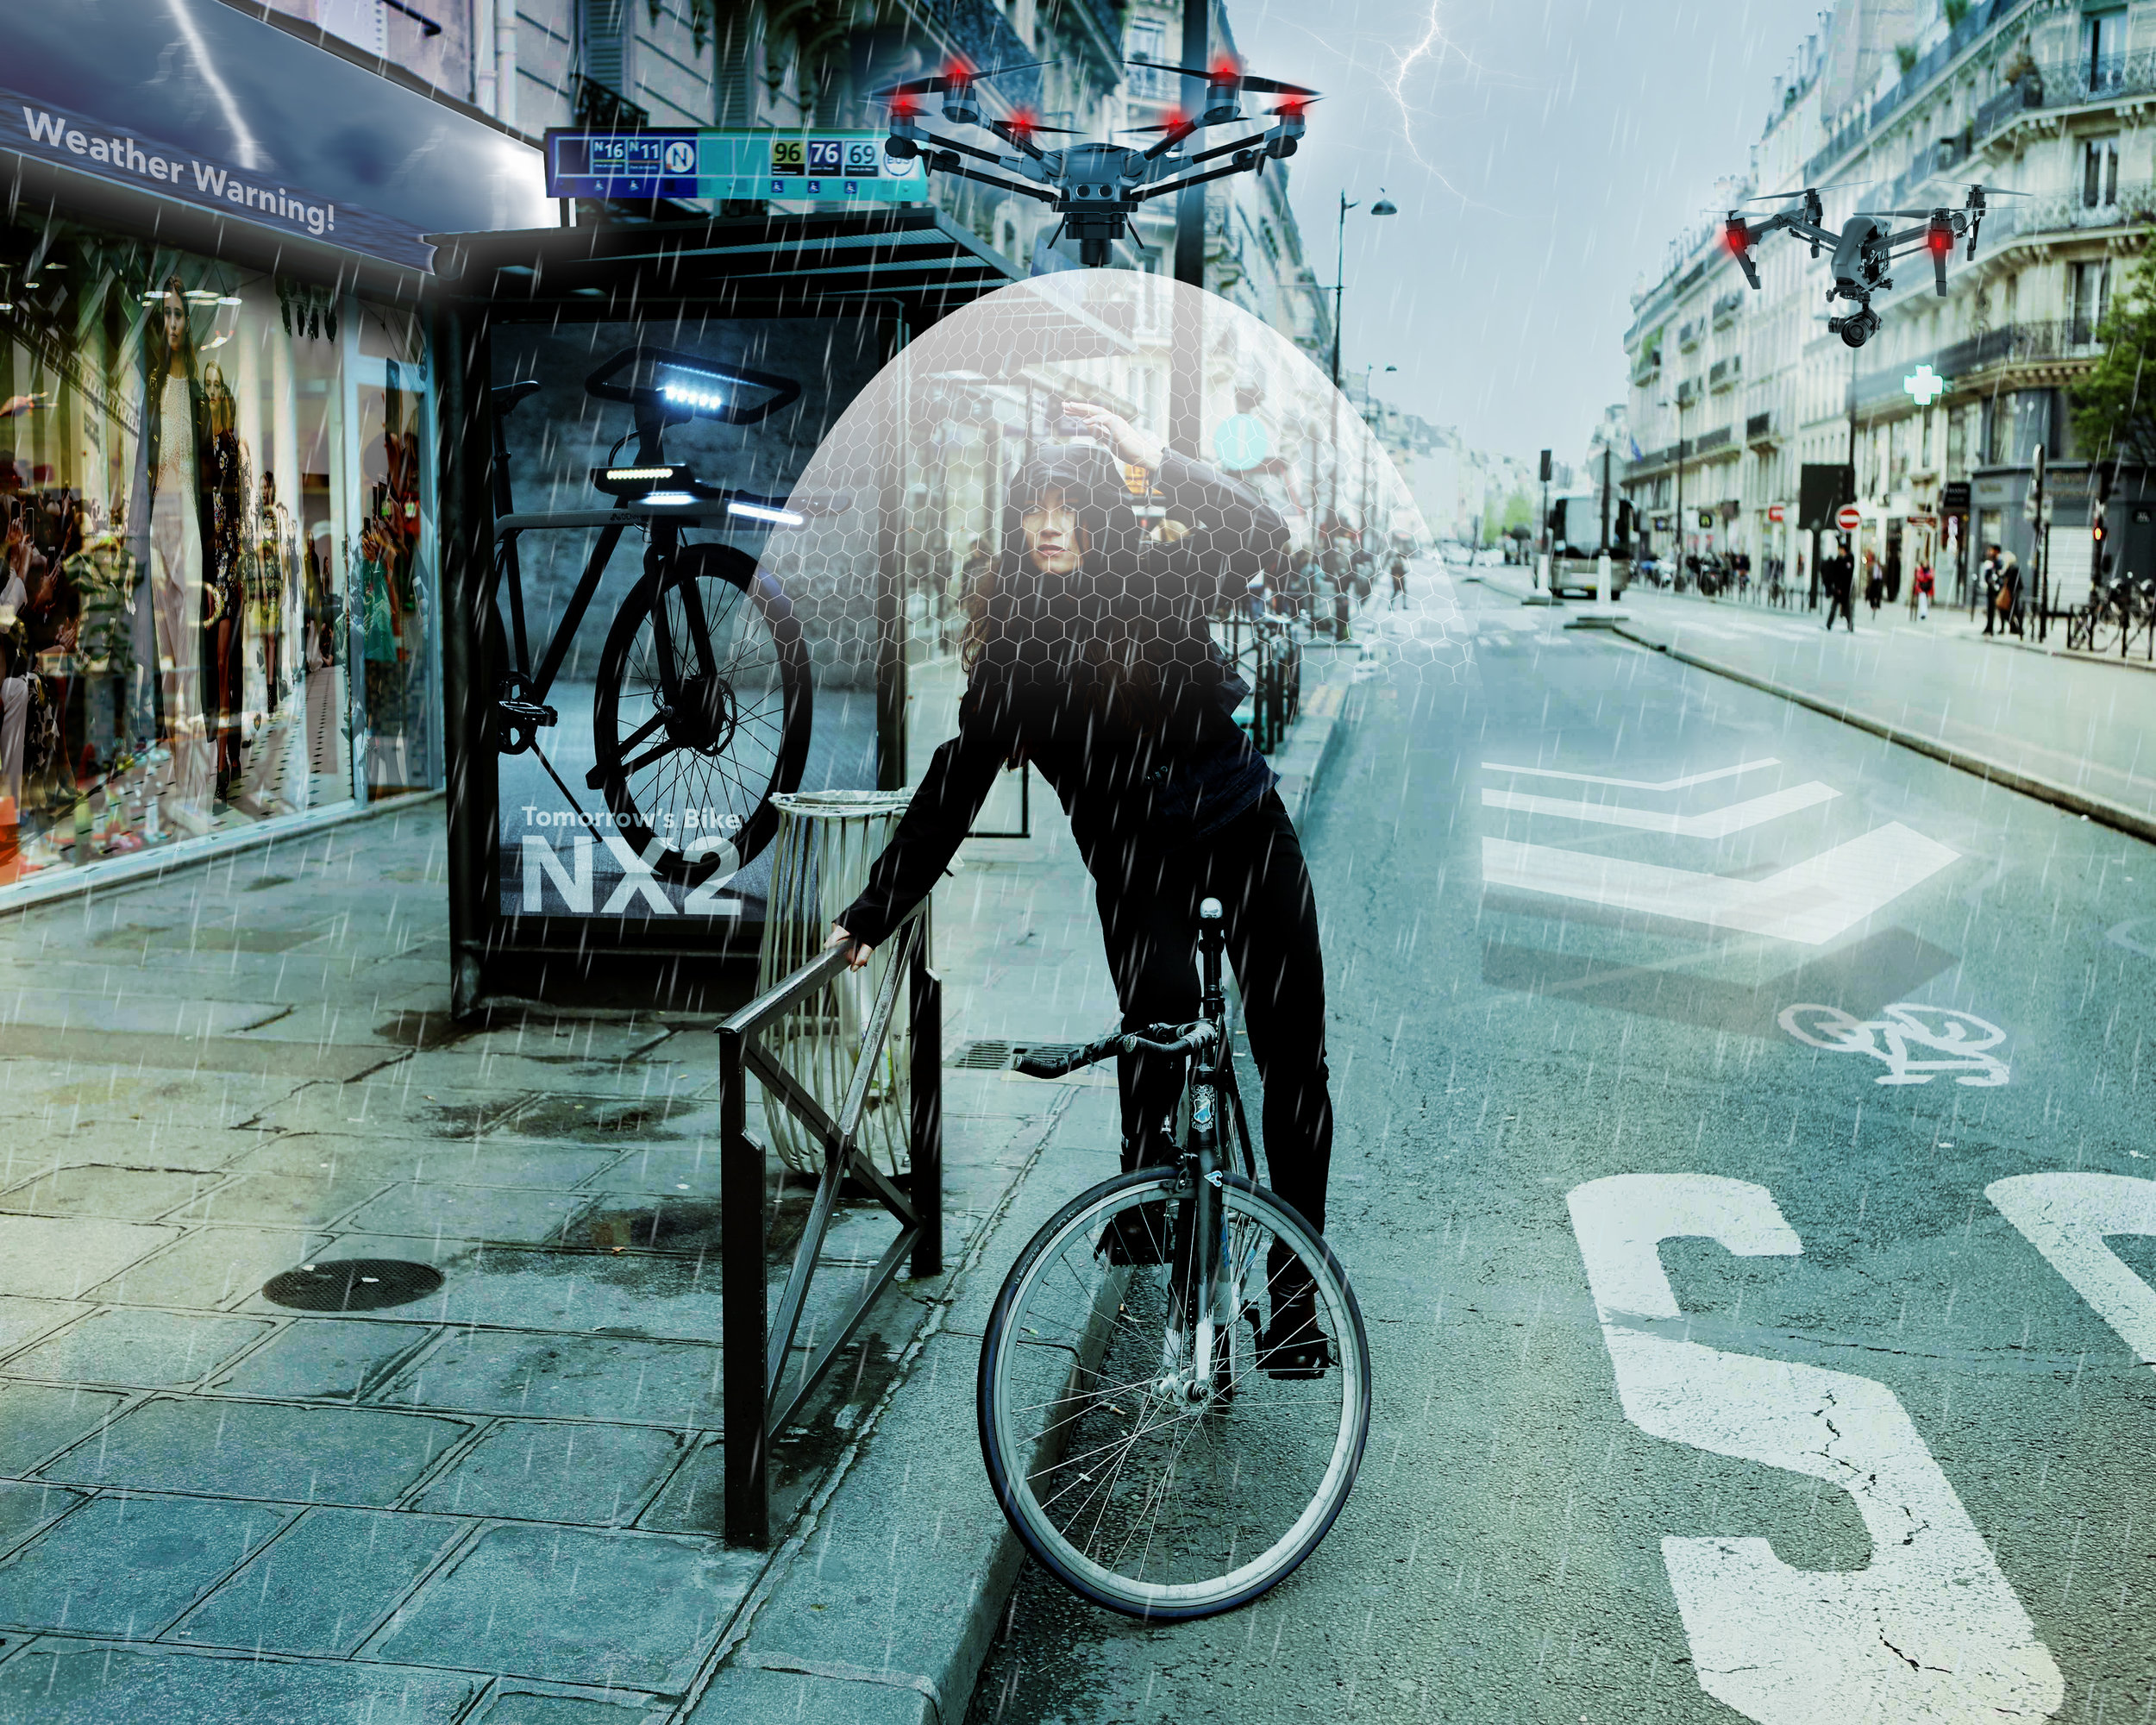 Imagine when it rains having a drone that provides rain cover to keep cyclists dry? What's the point you ask, well we believe cycling will and should always be a preferred mainstream mode of transport in cities; go to Copenhagen if you're not already a believer. Cycling keeps us active and healthy, takes up far less space than vehicles,